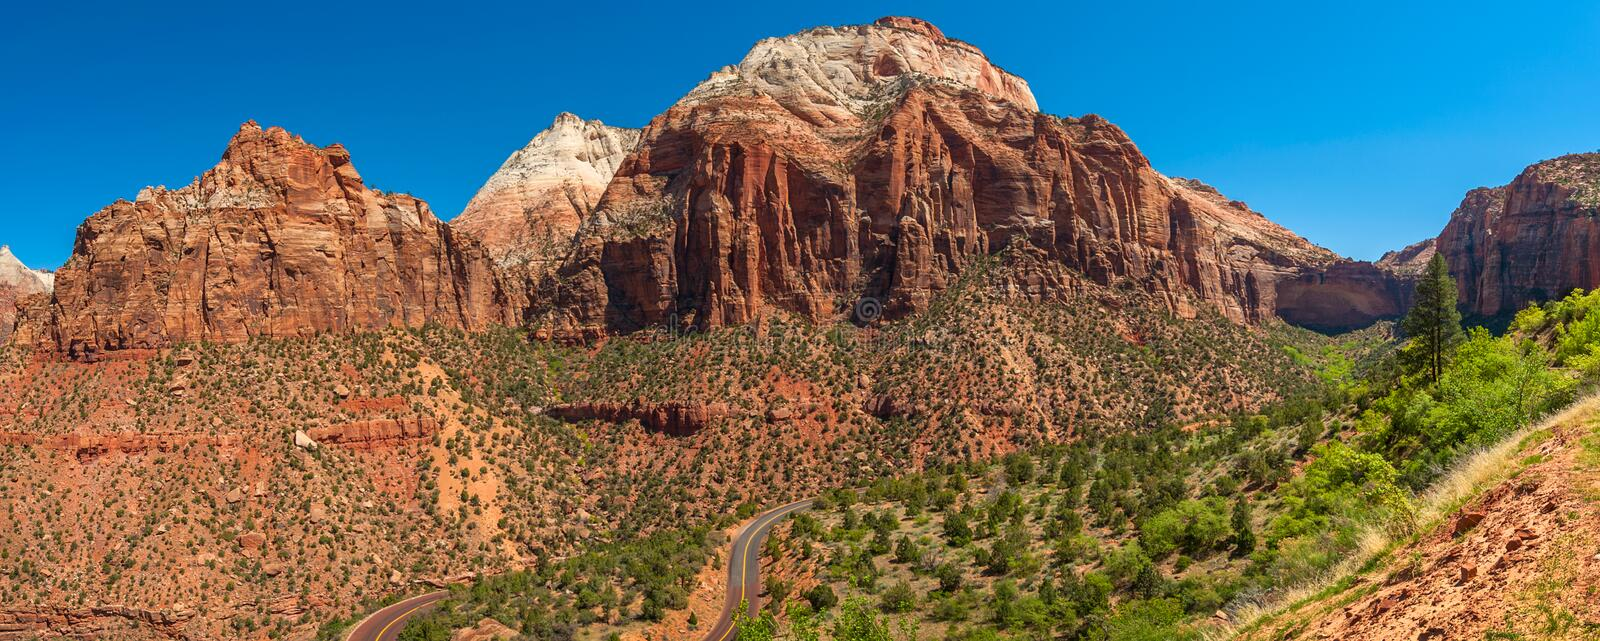 Panoramic View of Zion National Park, Utah. Zion National Park is a southwest Utah nature preserve distinguished by Zion Canyon's steep red cliffs. Enjoy stock photo